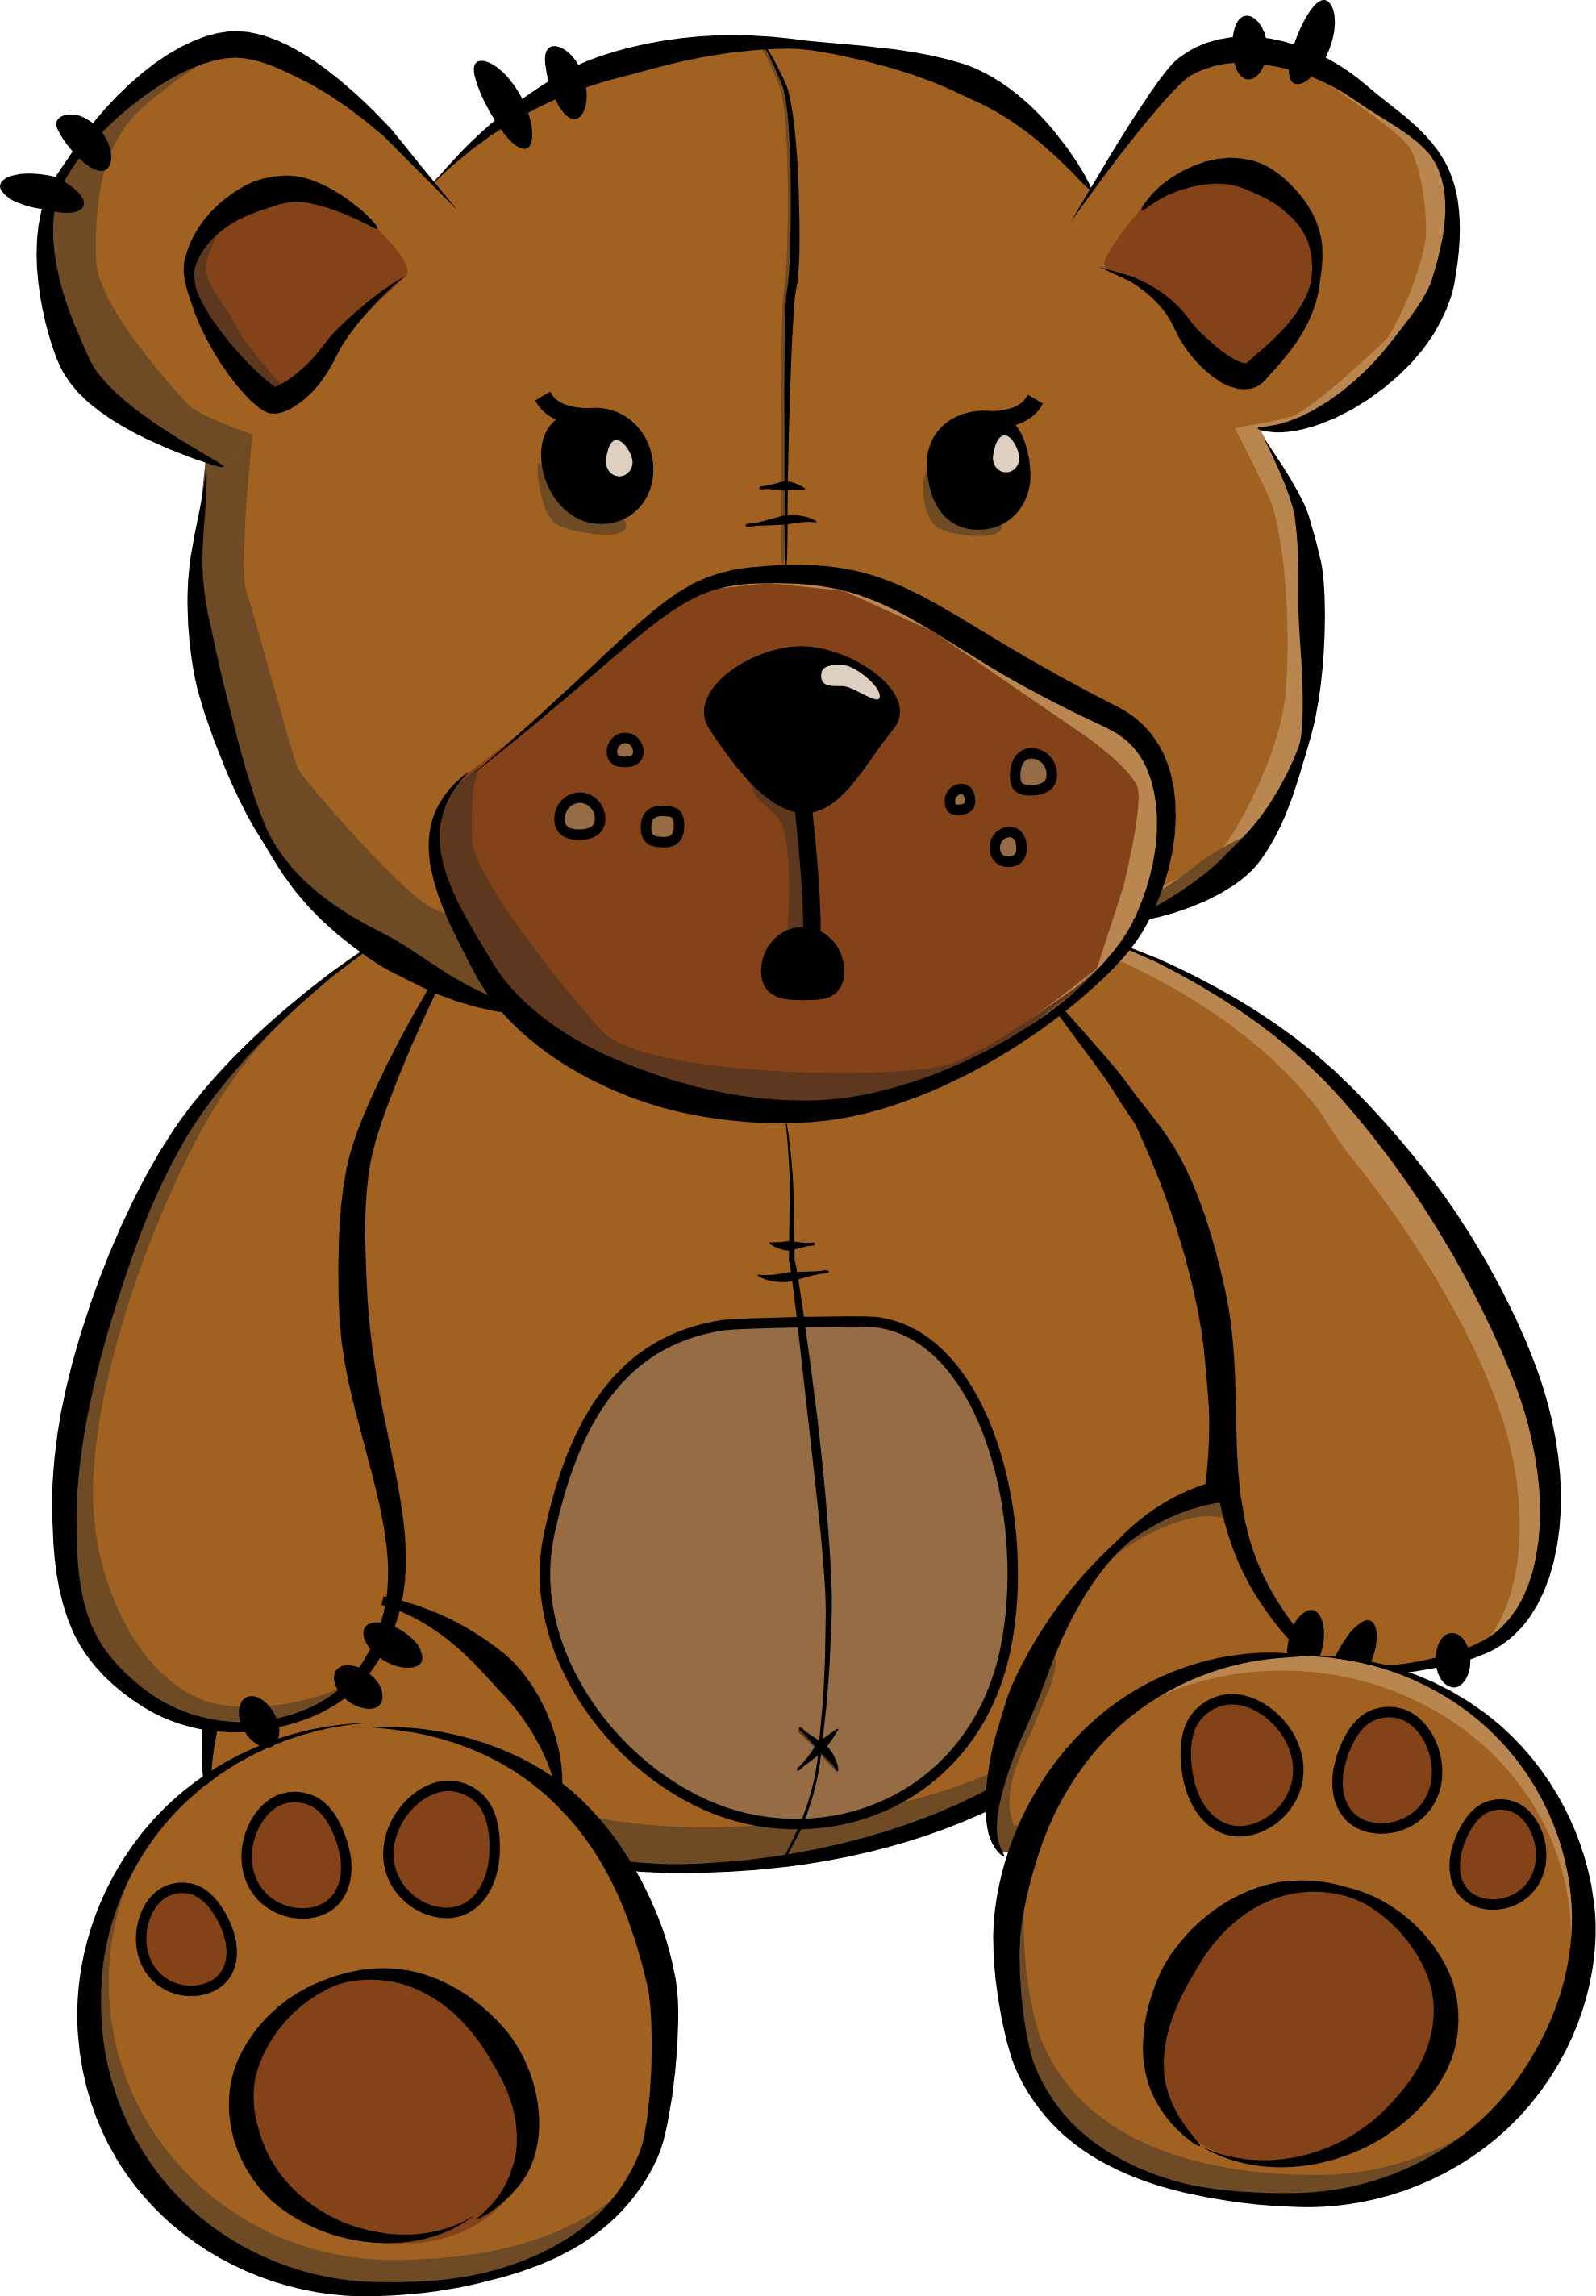 banner royalty free Bear clipart png. Icon web icons